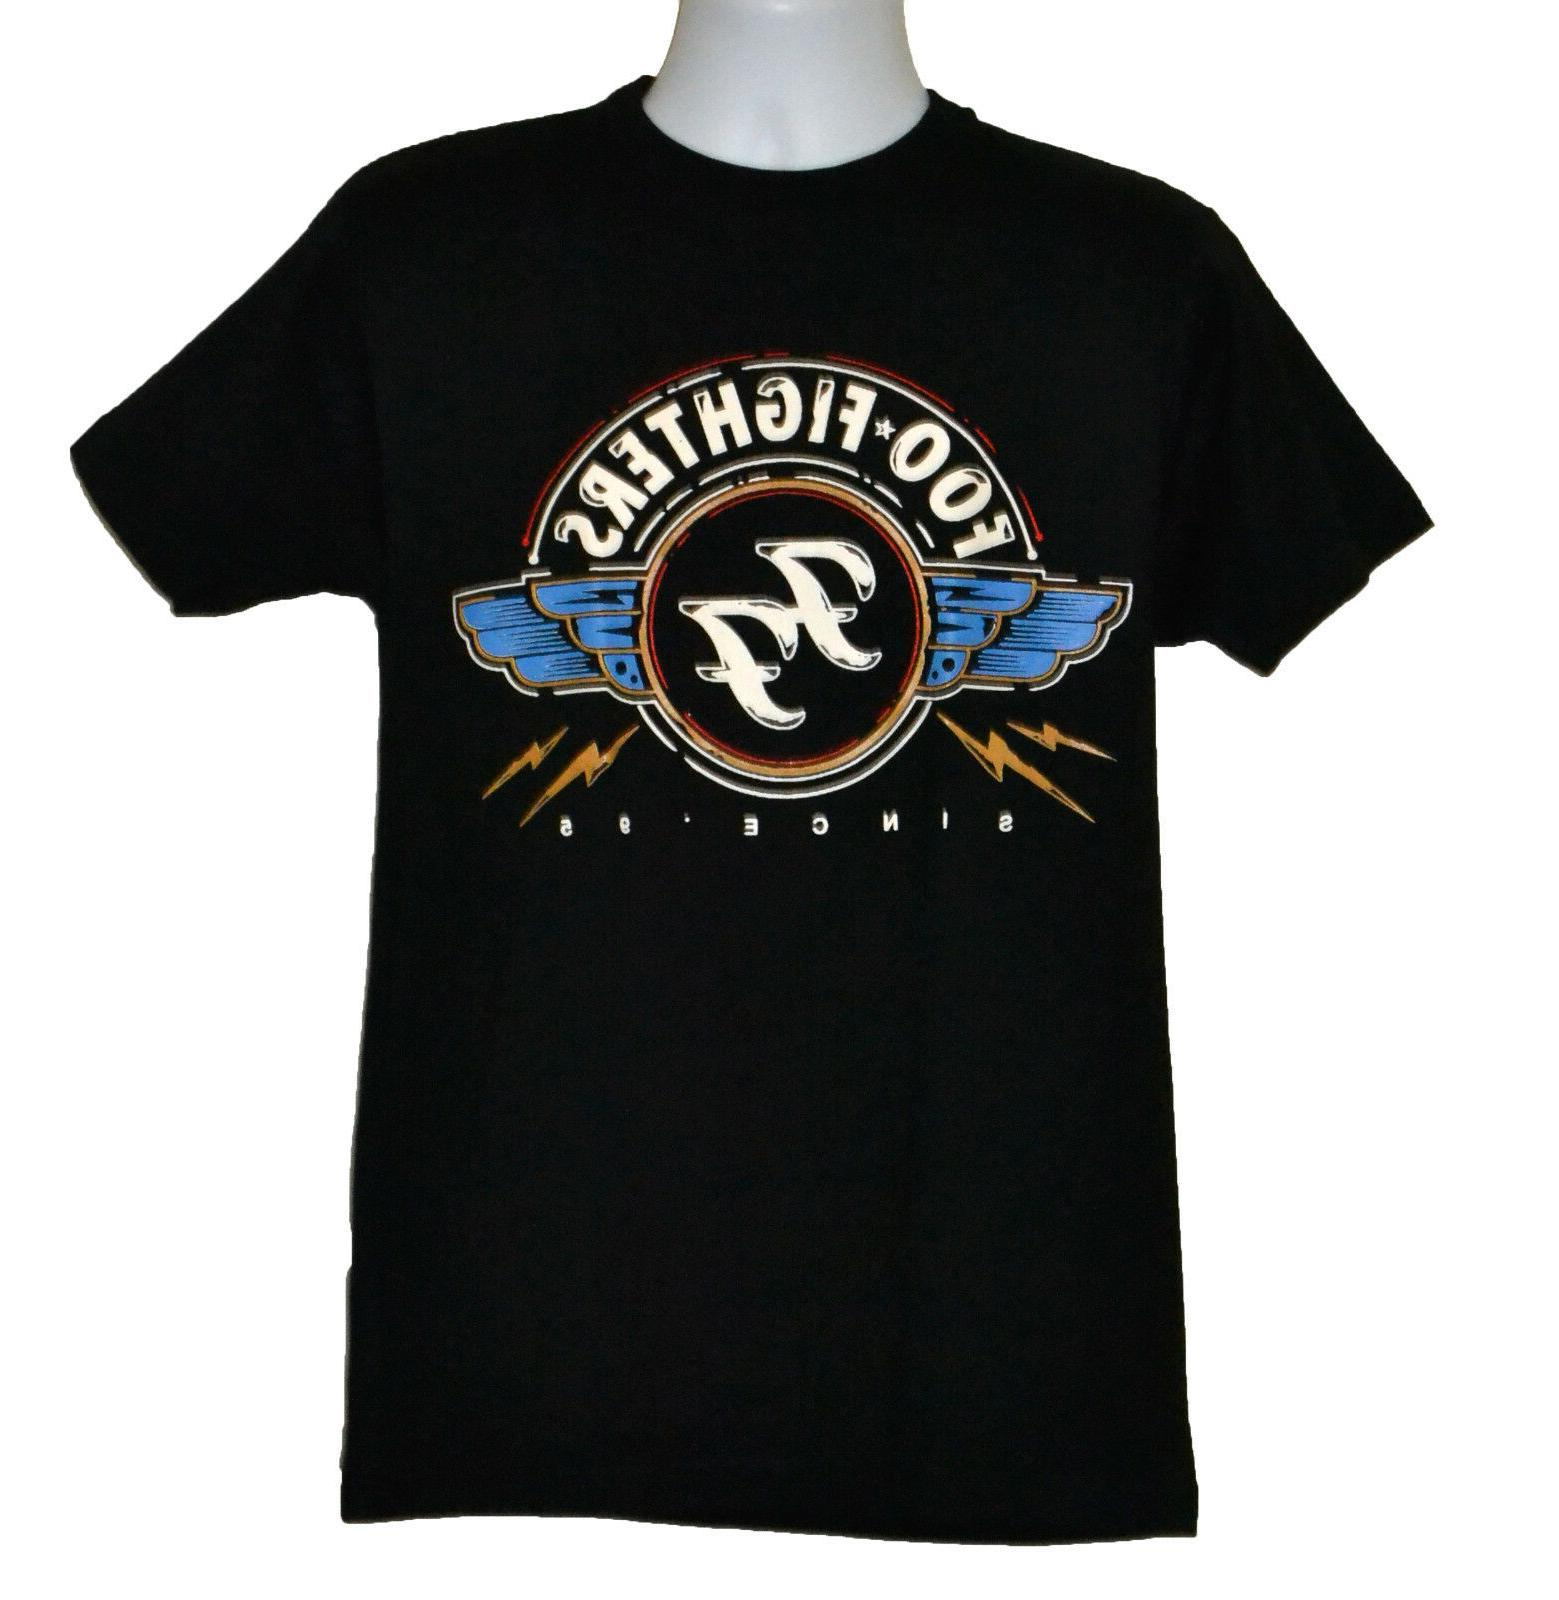 foo fighters t shirt rock band graphic